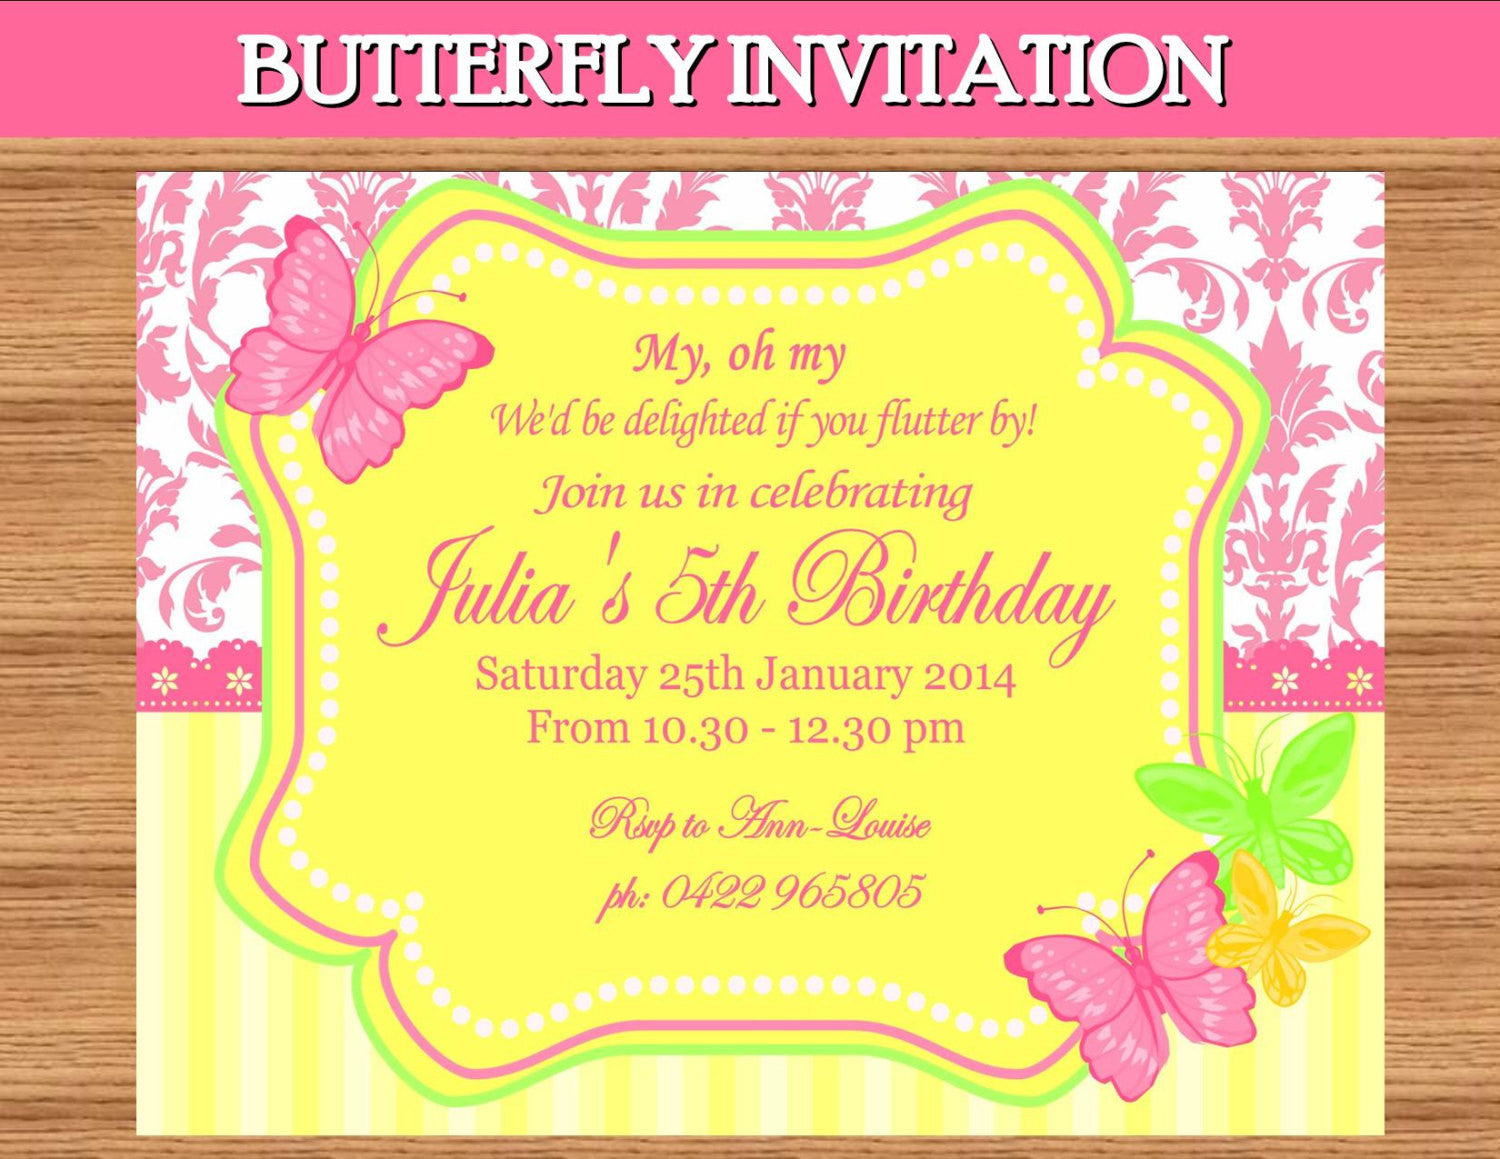 BUTTERFLY INVITATION Birthday Party Wedding Shower Krown – Butterfly Invitations Birthday